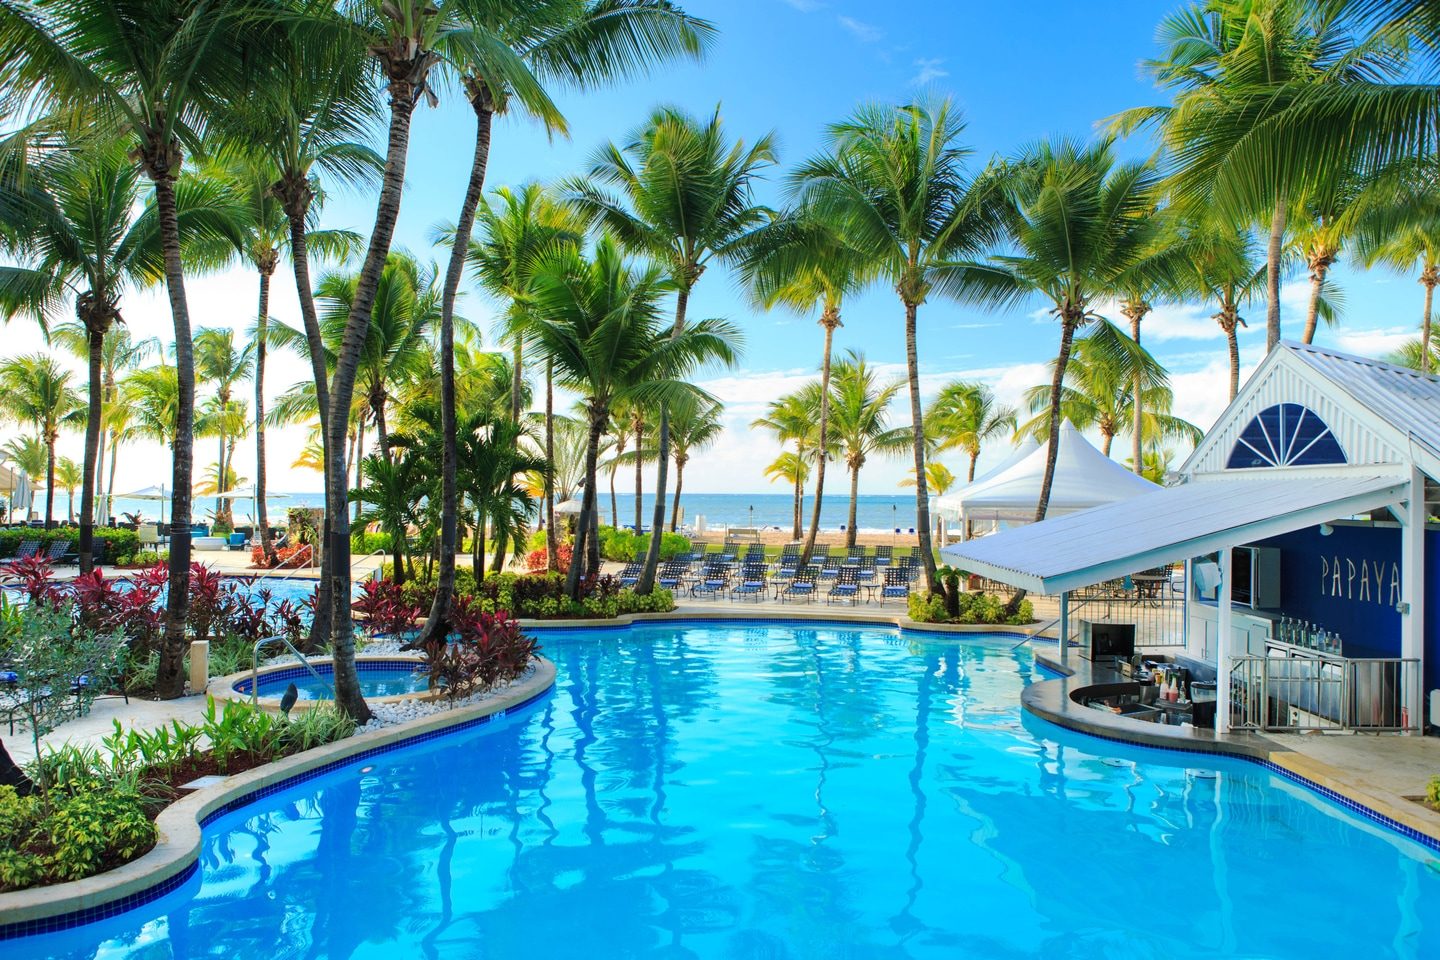 Best Marriott Bonvoy Category 3-5 Hotels & Resorts in the Caribbean For Your Marriott Free Night 35k Certificate